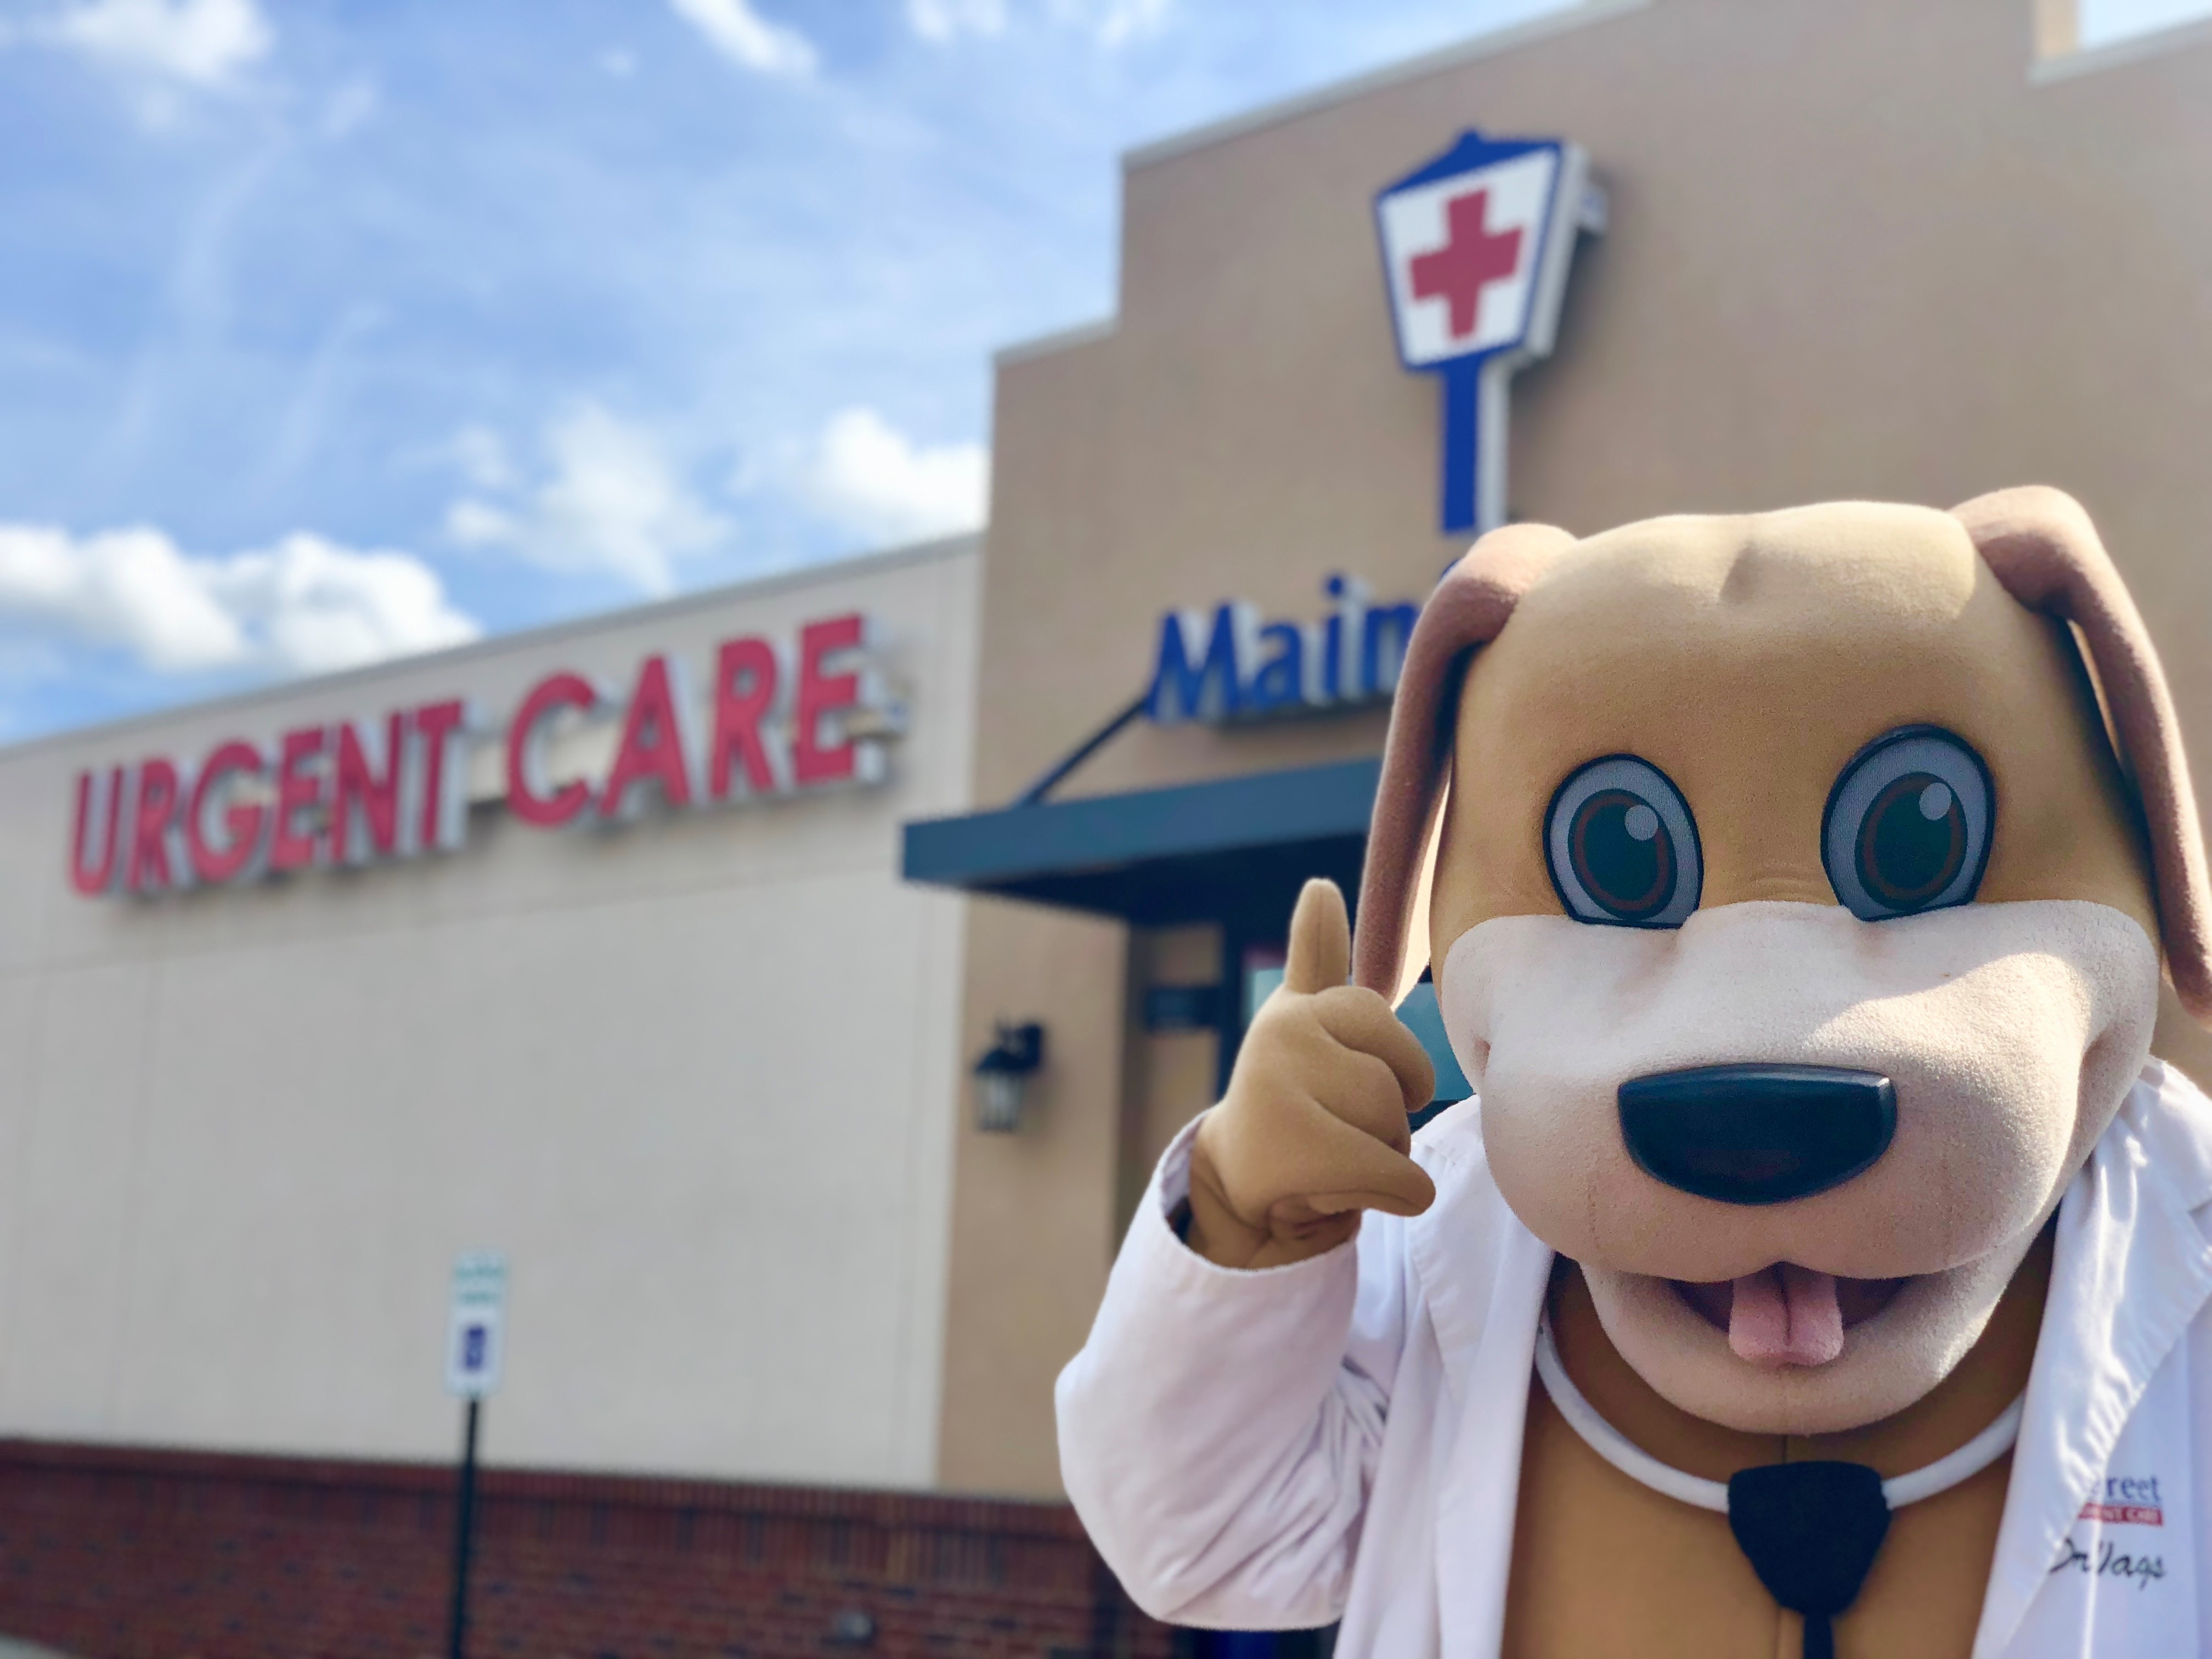 10 things to know about mainstreet family care clinic